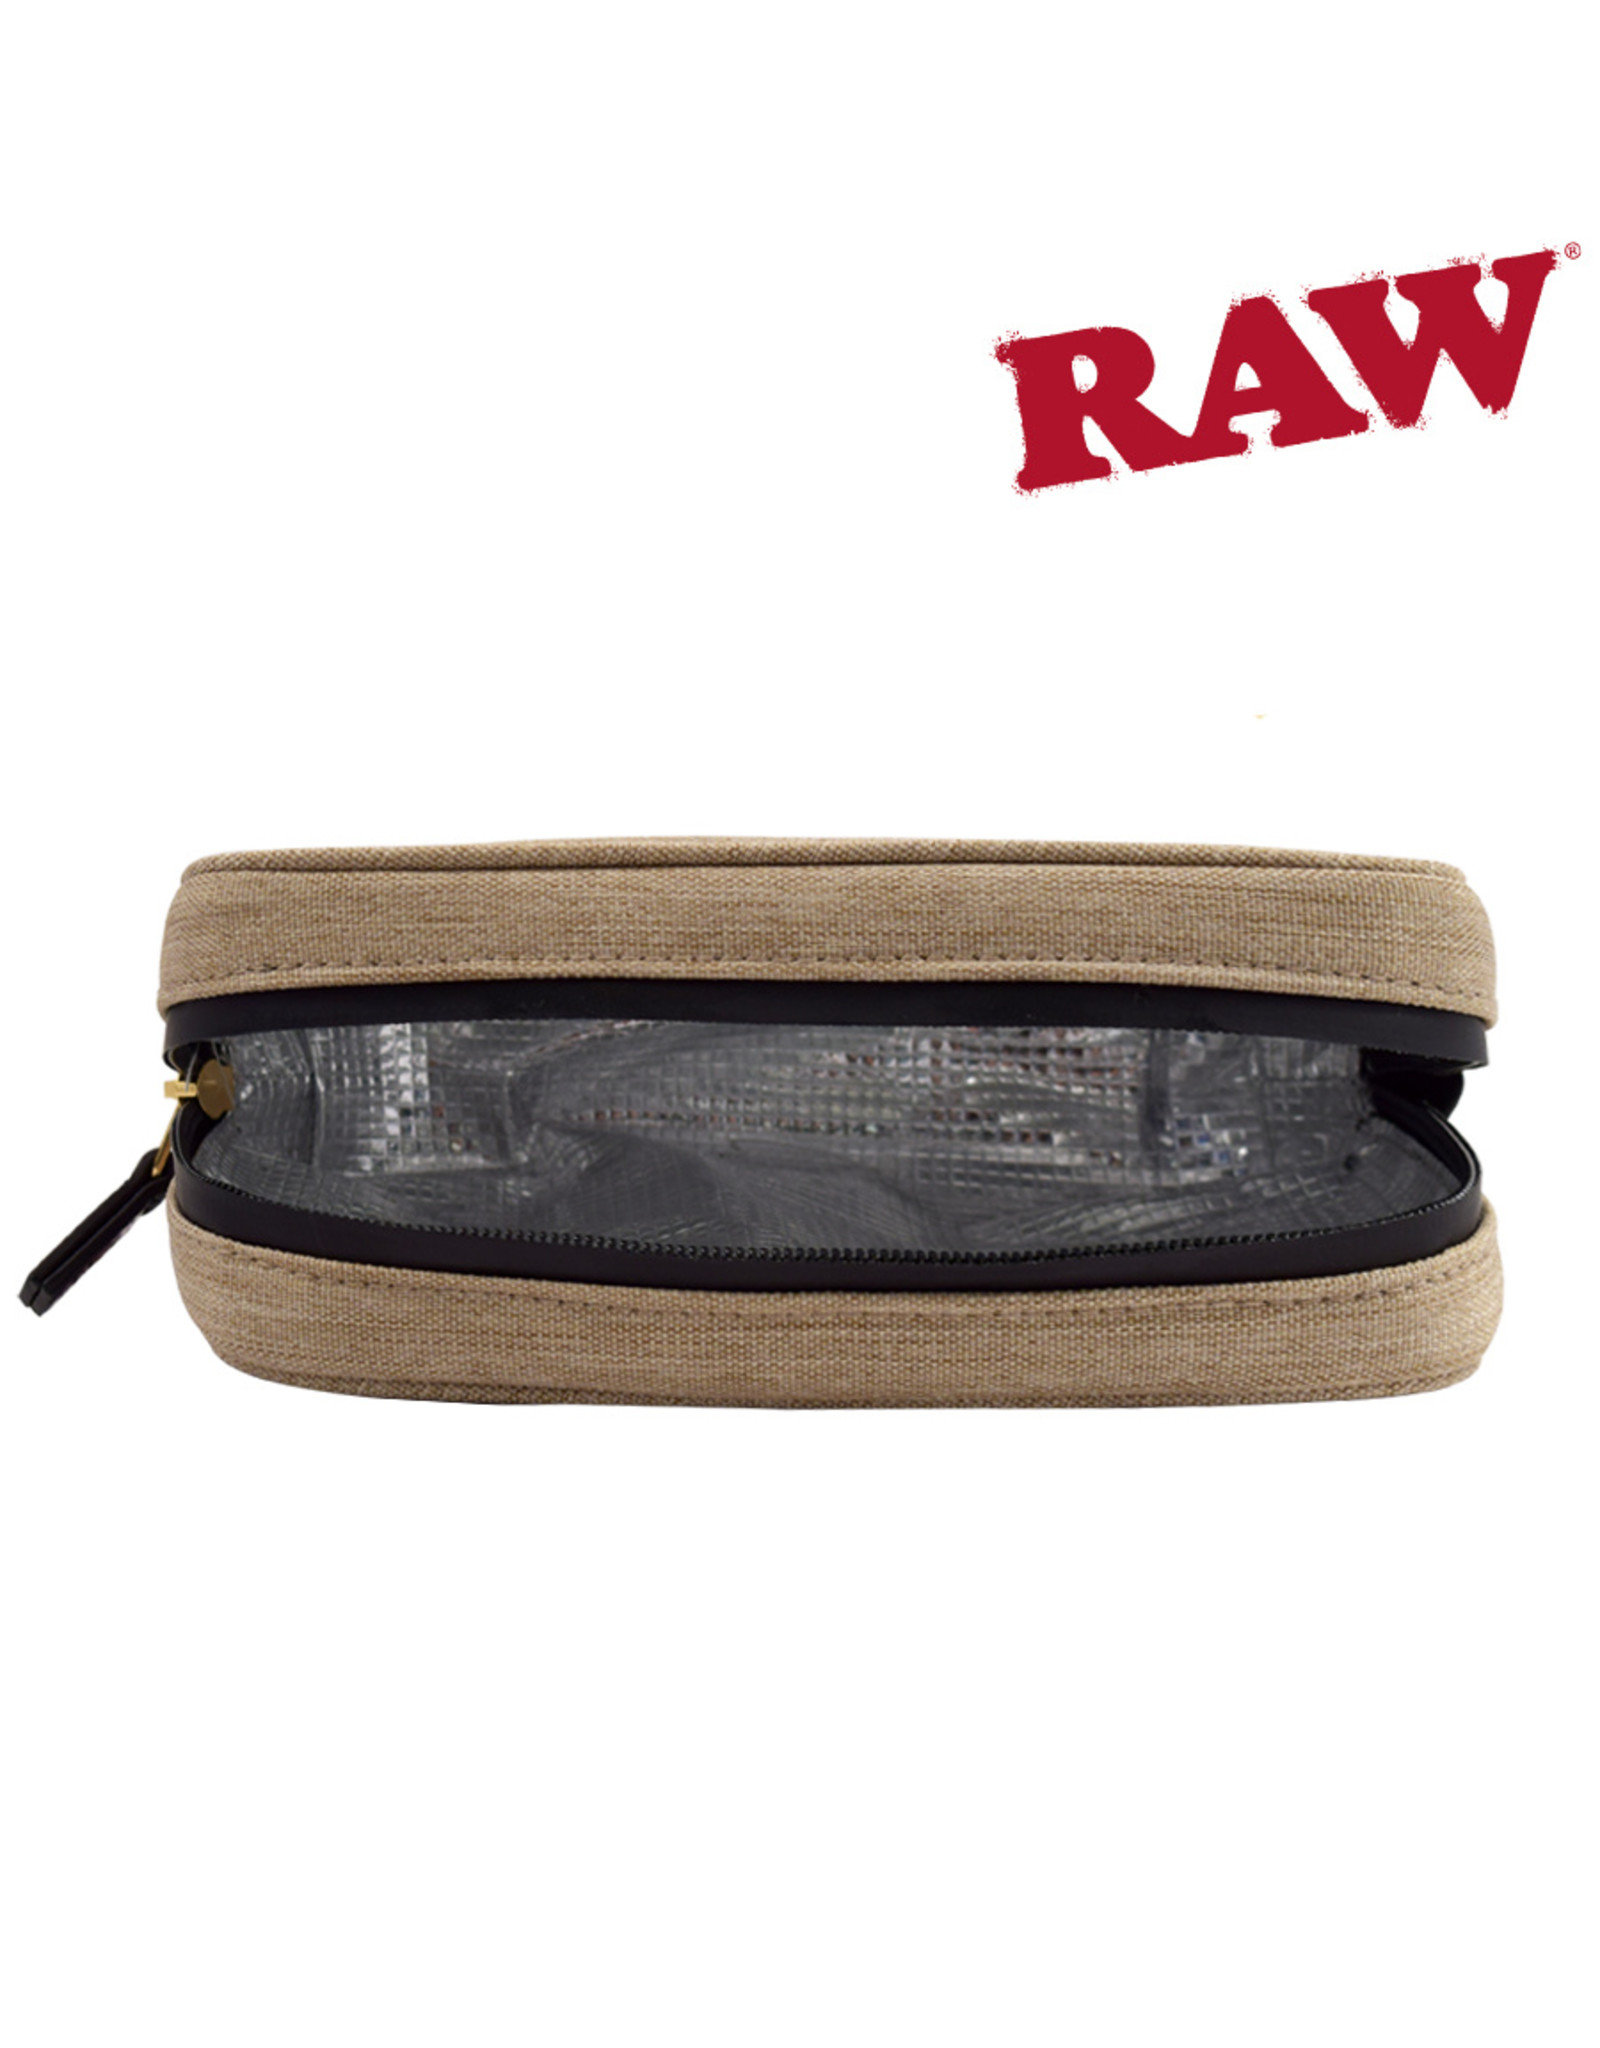 RAW Raw Smellproof Pouch Medium